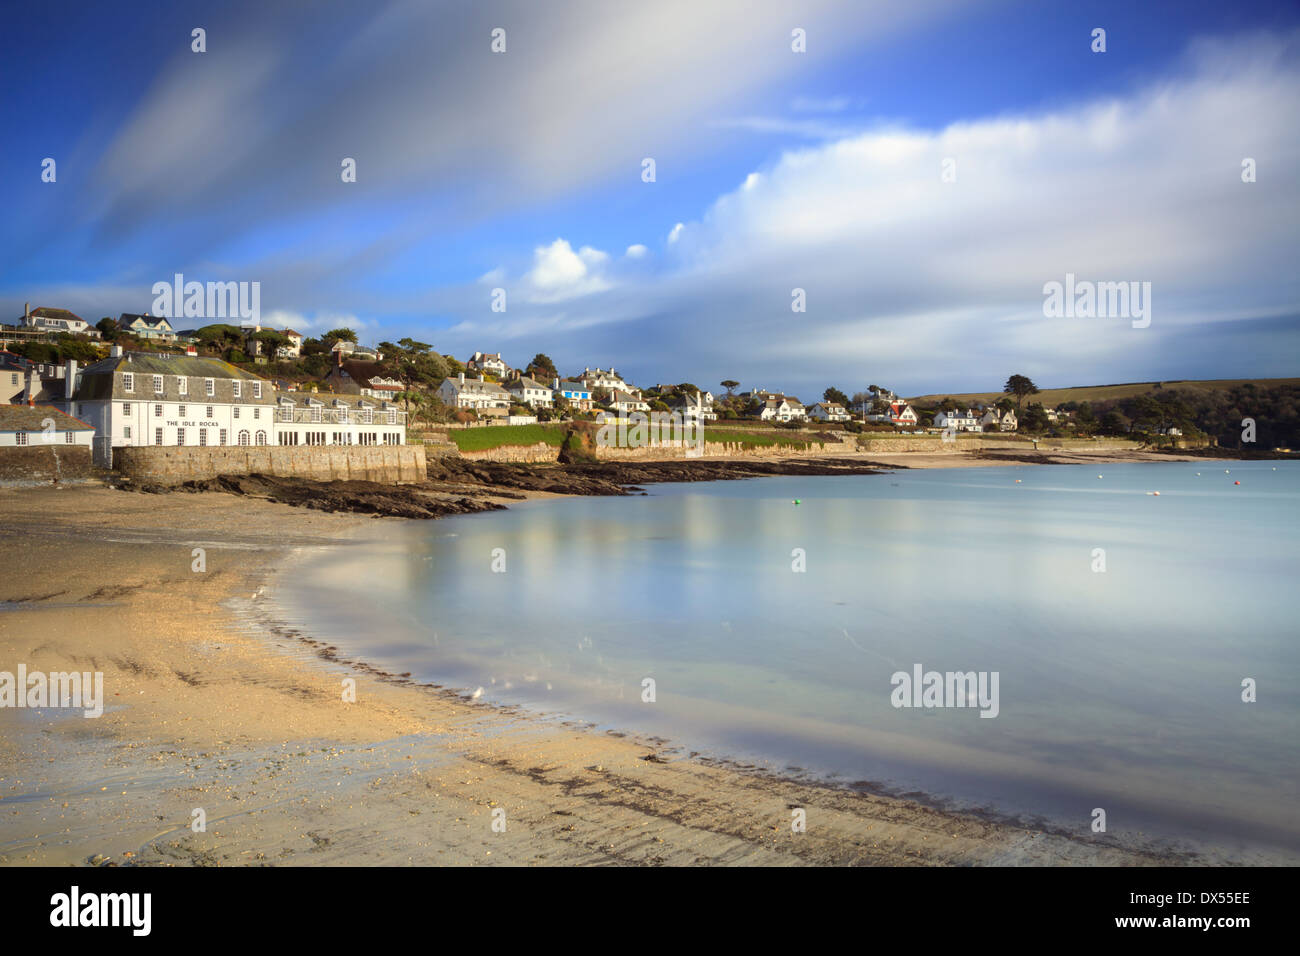 St Mawes in Cornwall captured using a long exposure to blur the movement in the water and clouds - Stock Image